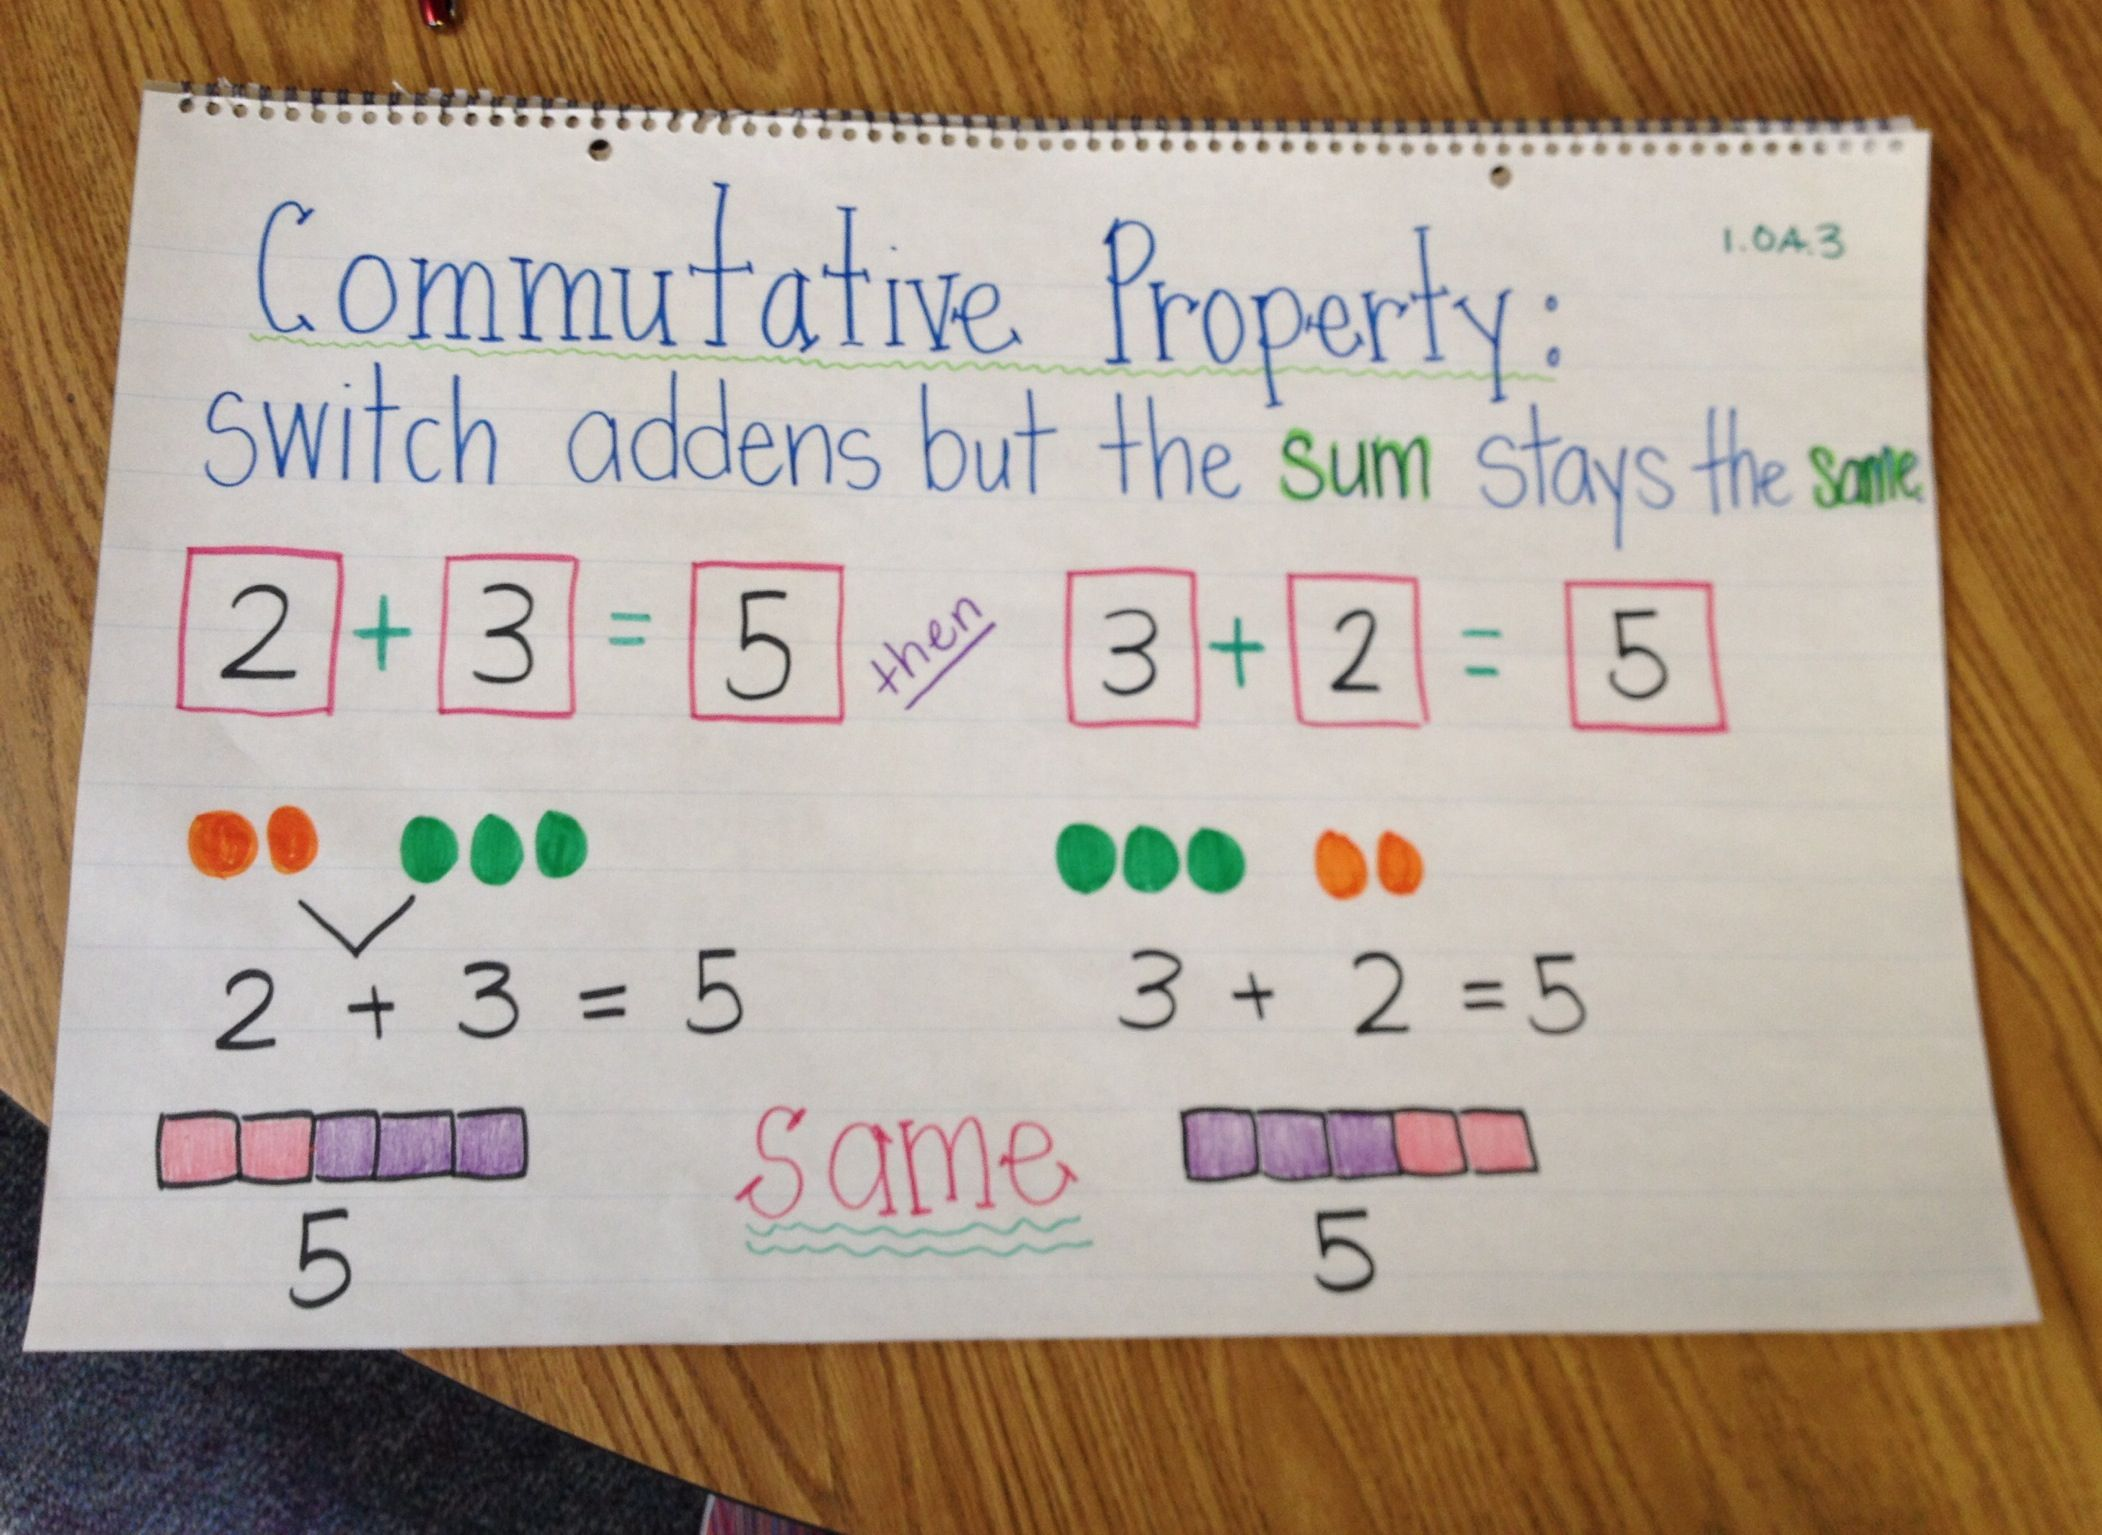 Commutative Property Of Addition Miriam Guerrero Commutative Property Commutative Property Of Addition Properties Of Addition Commutative property of addition and